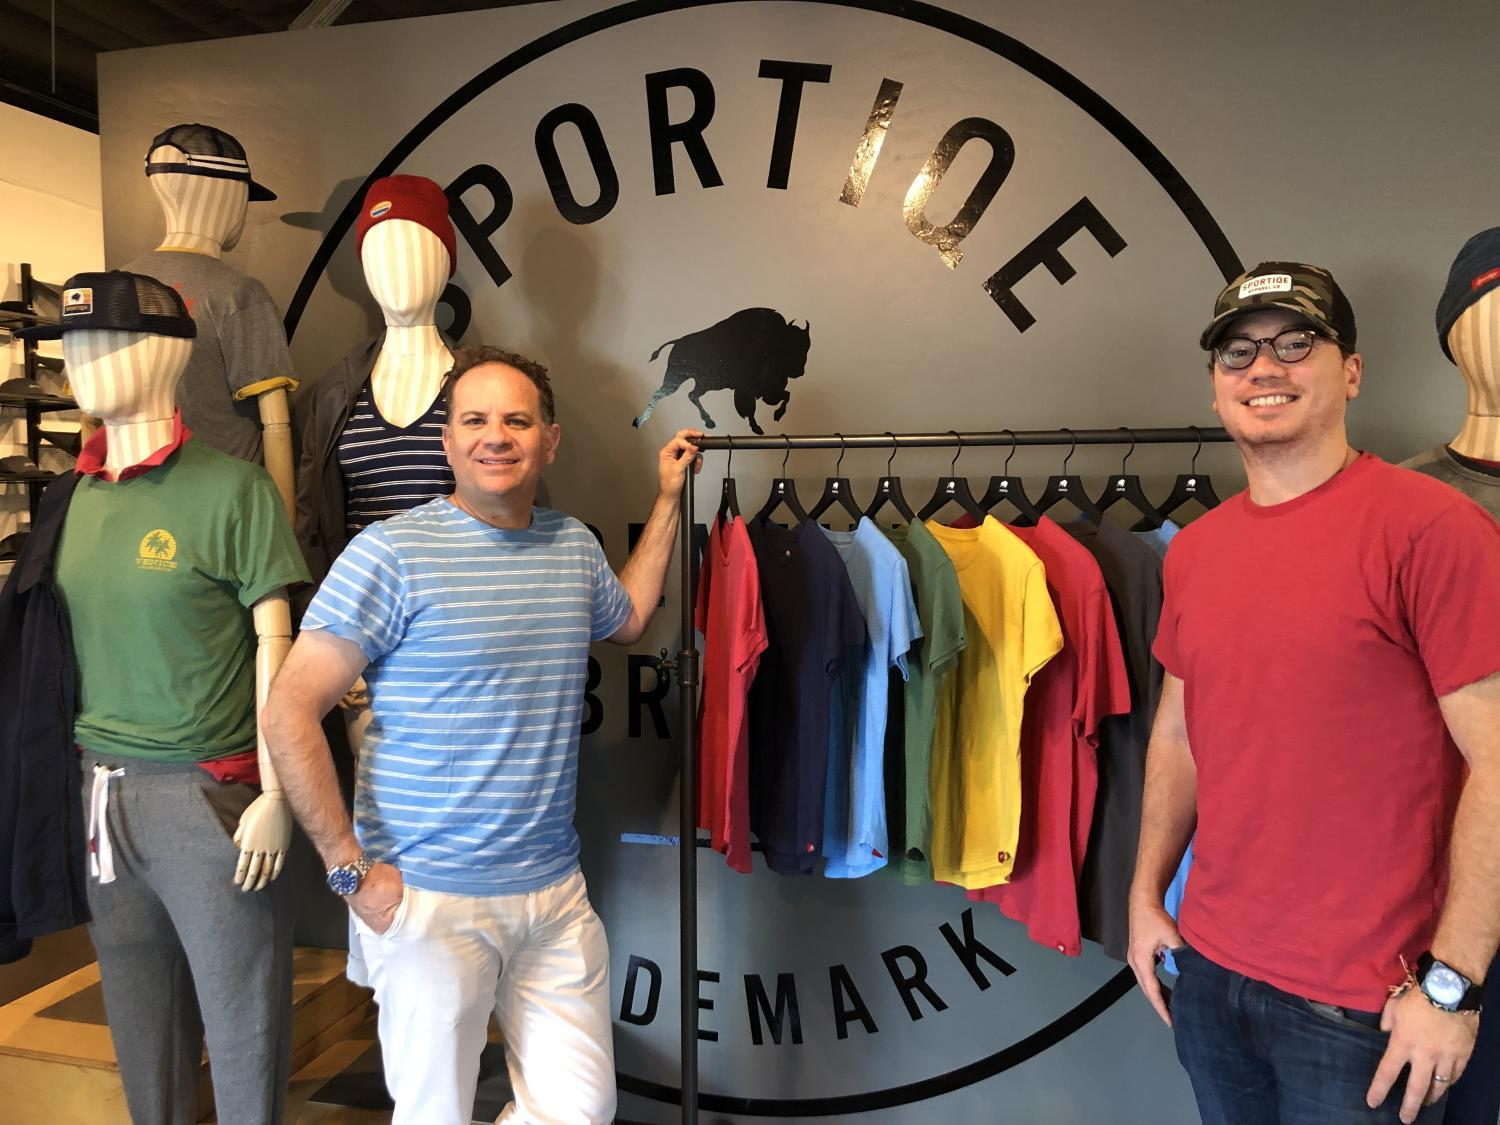 sportiqe co-owners